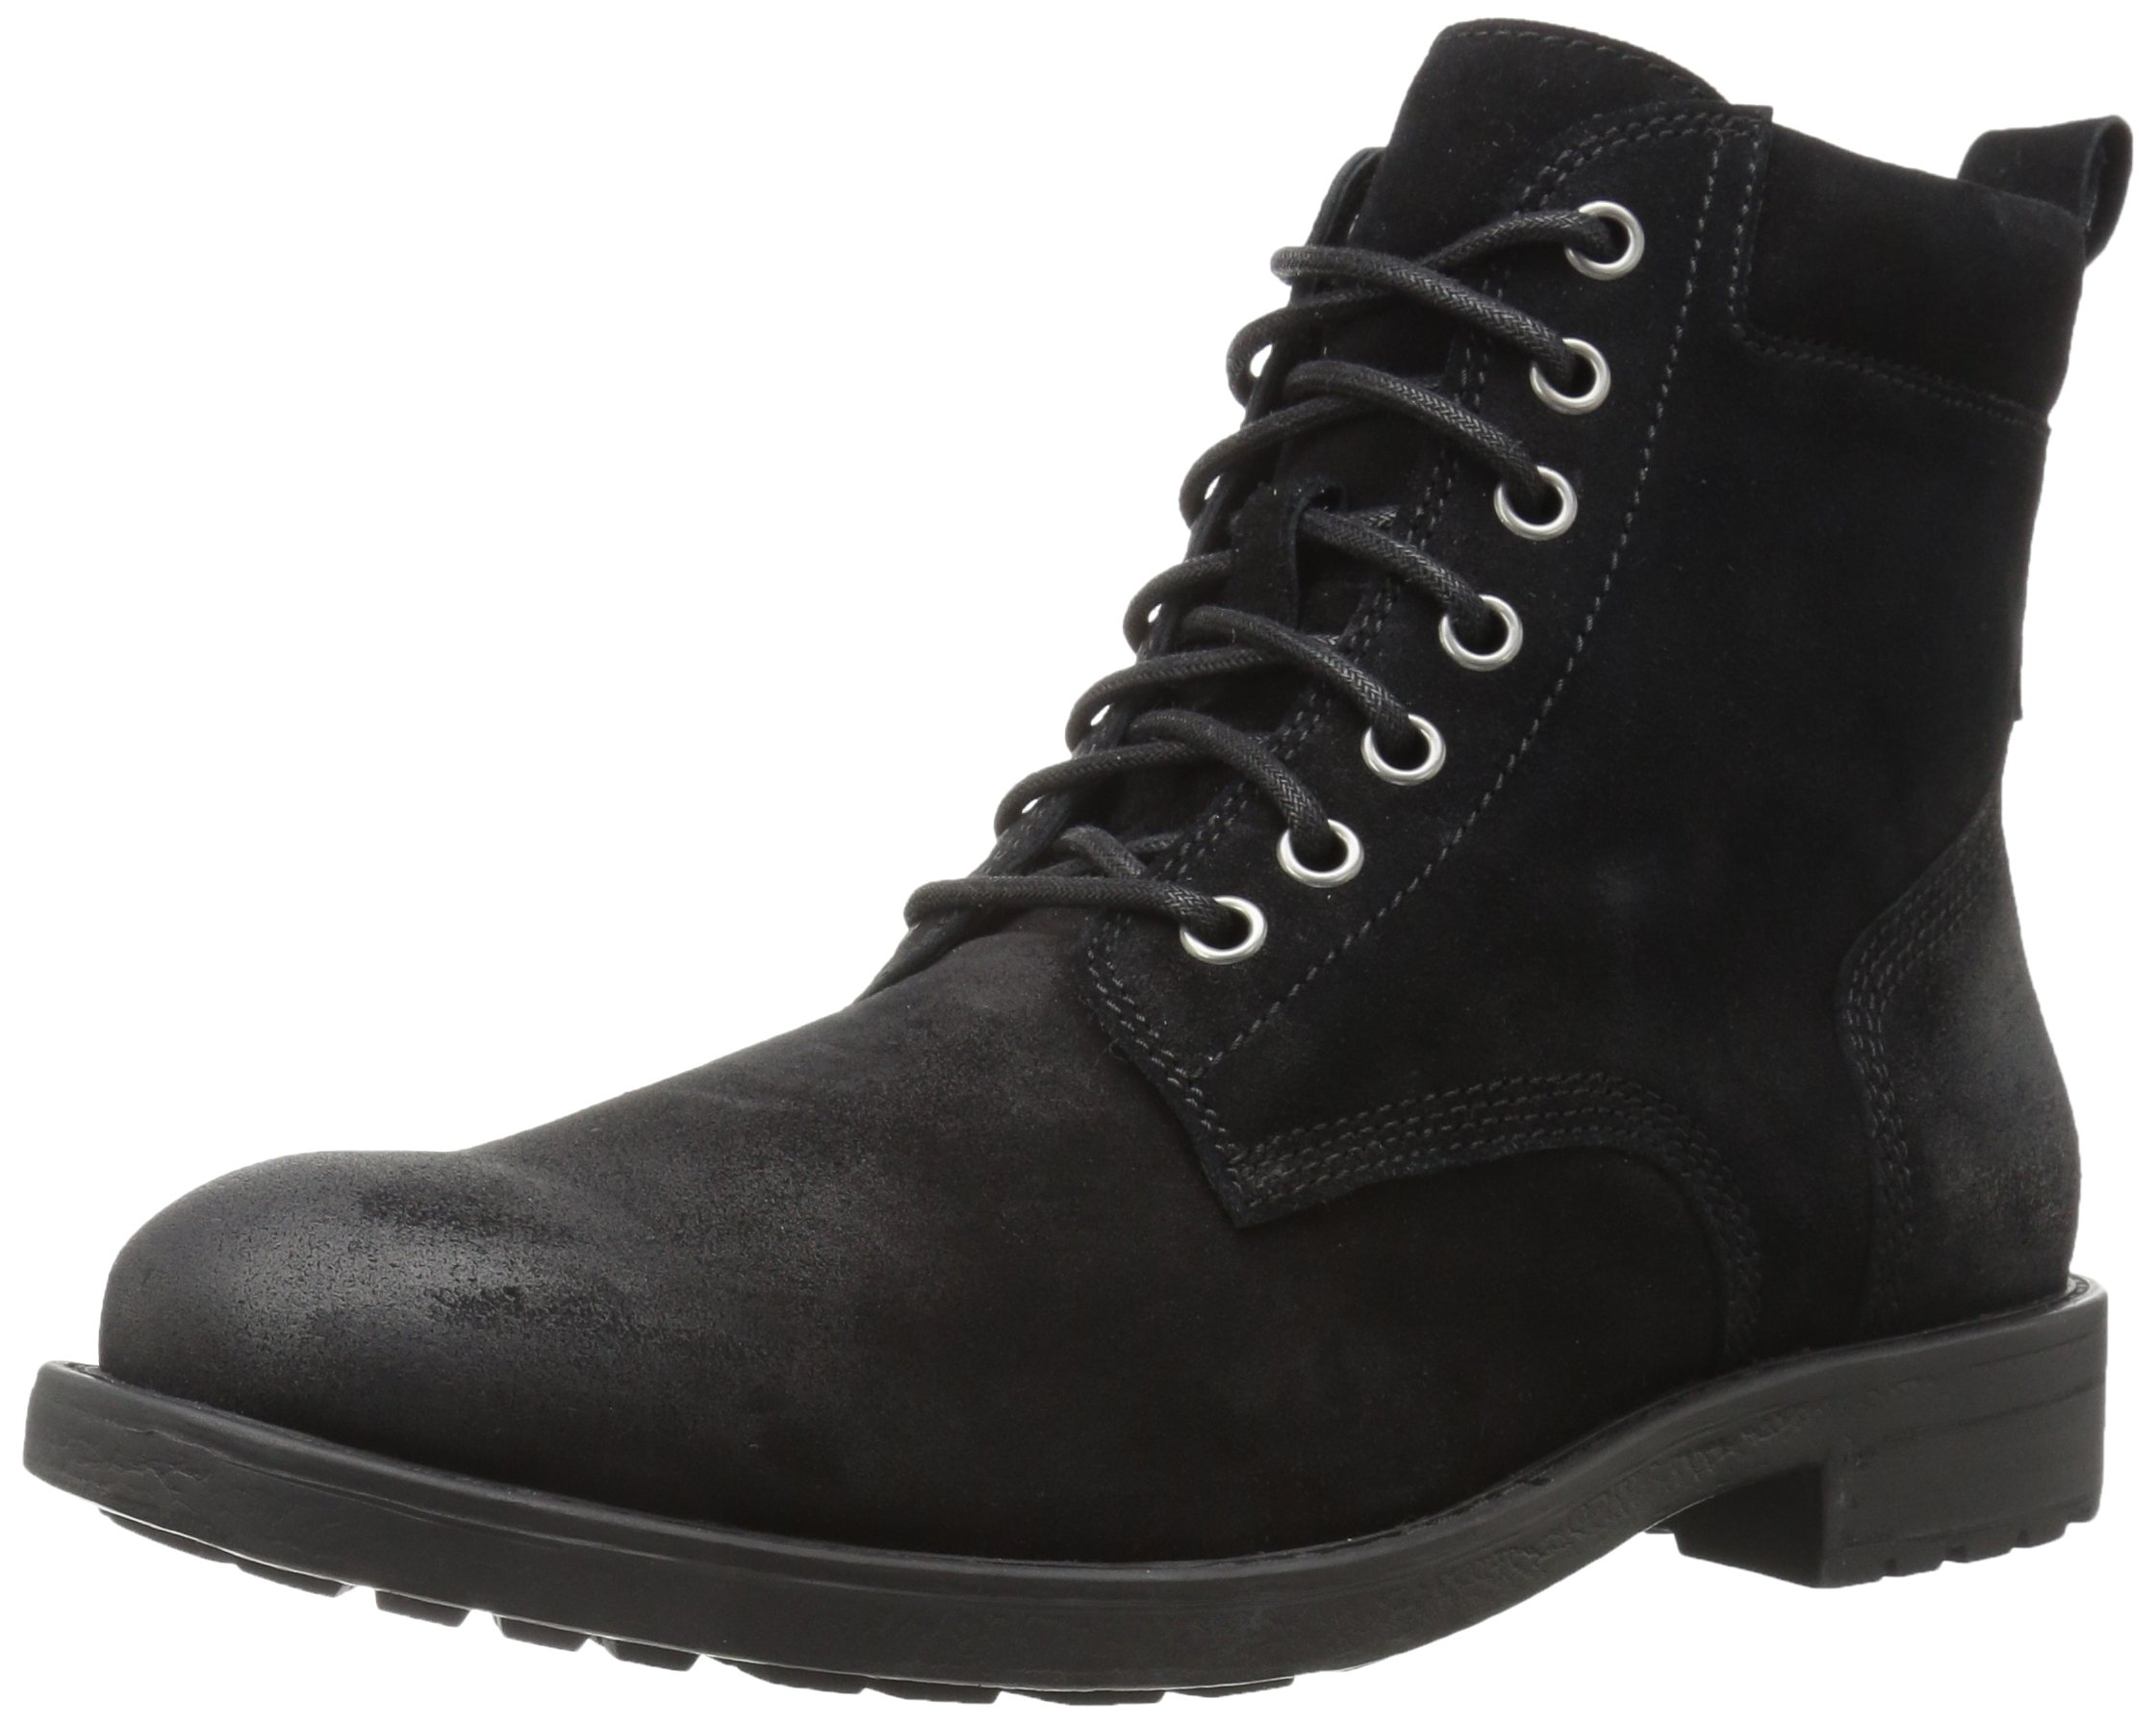 206 Collective Men's Denny Lace-up Motorcycle Boot, Black Burnish, 9.5 D US by 206 Collective (Image #1)